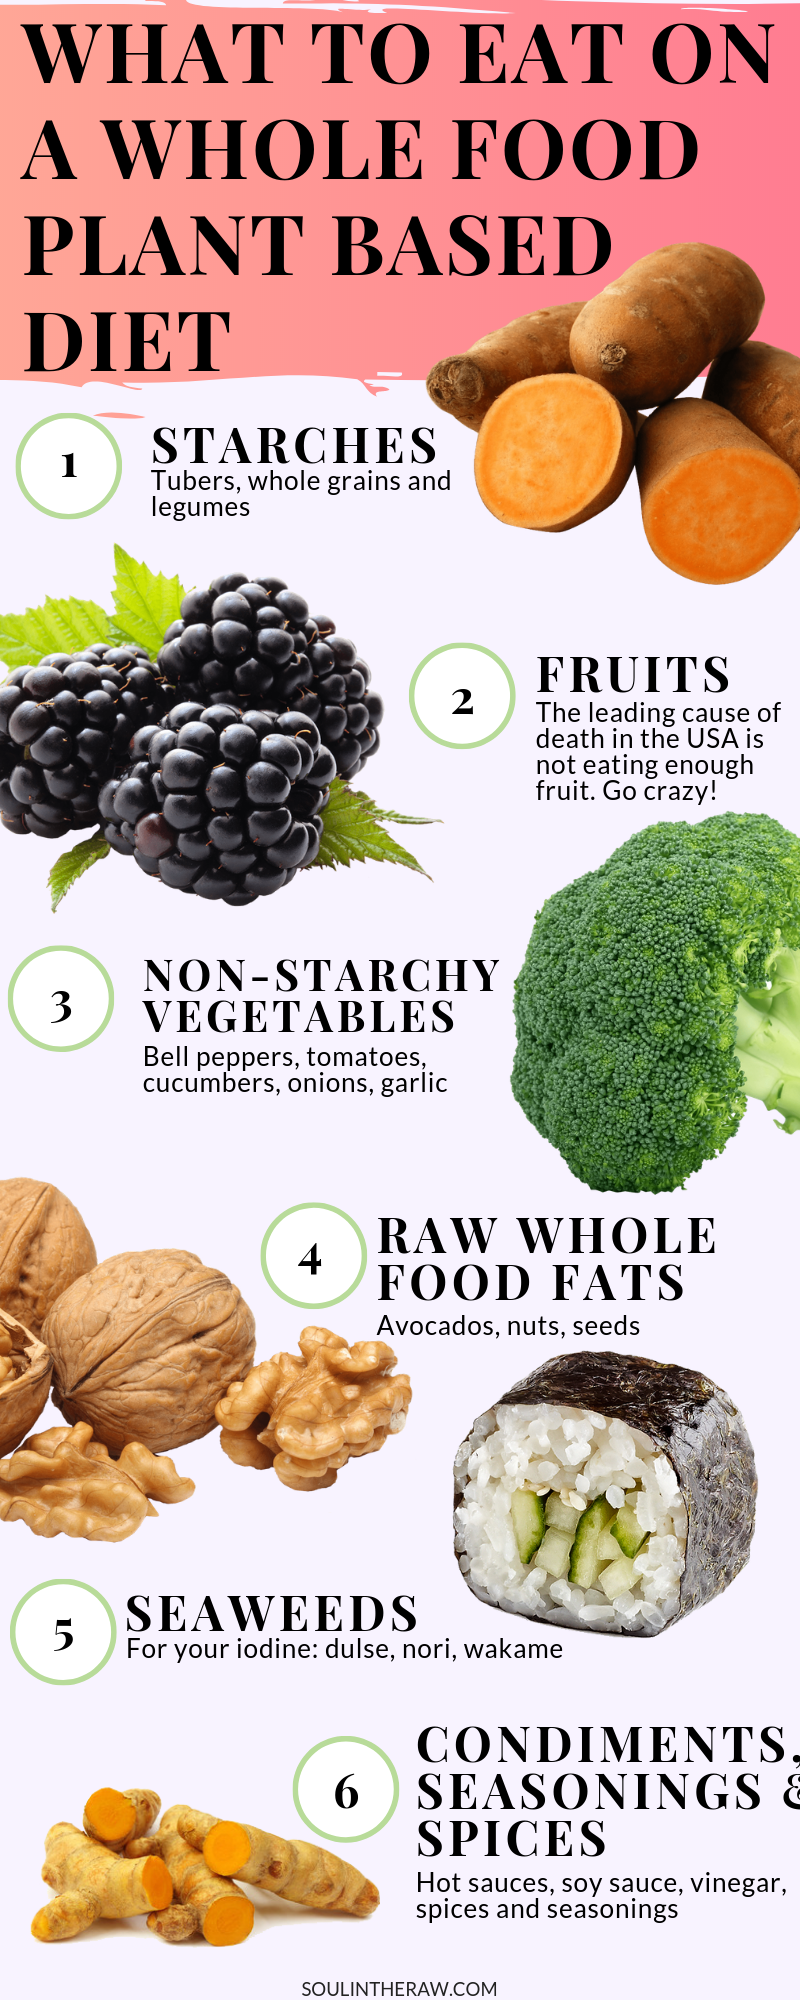 What to eat on a whole food, plant based diet